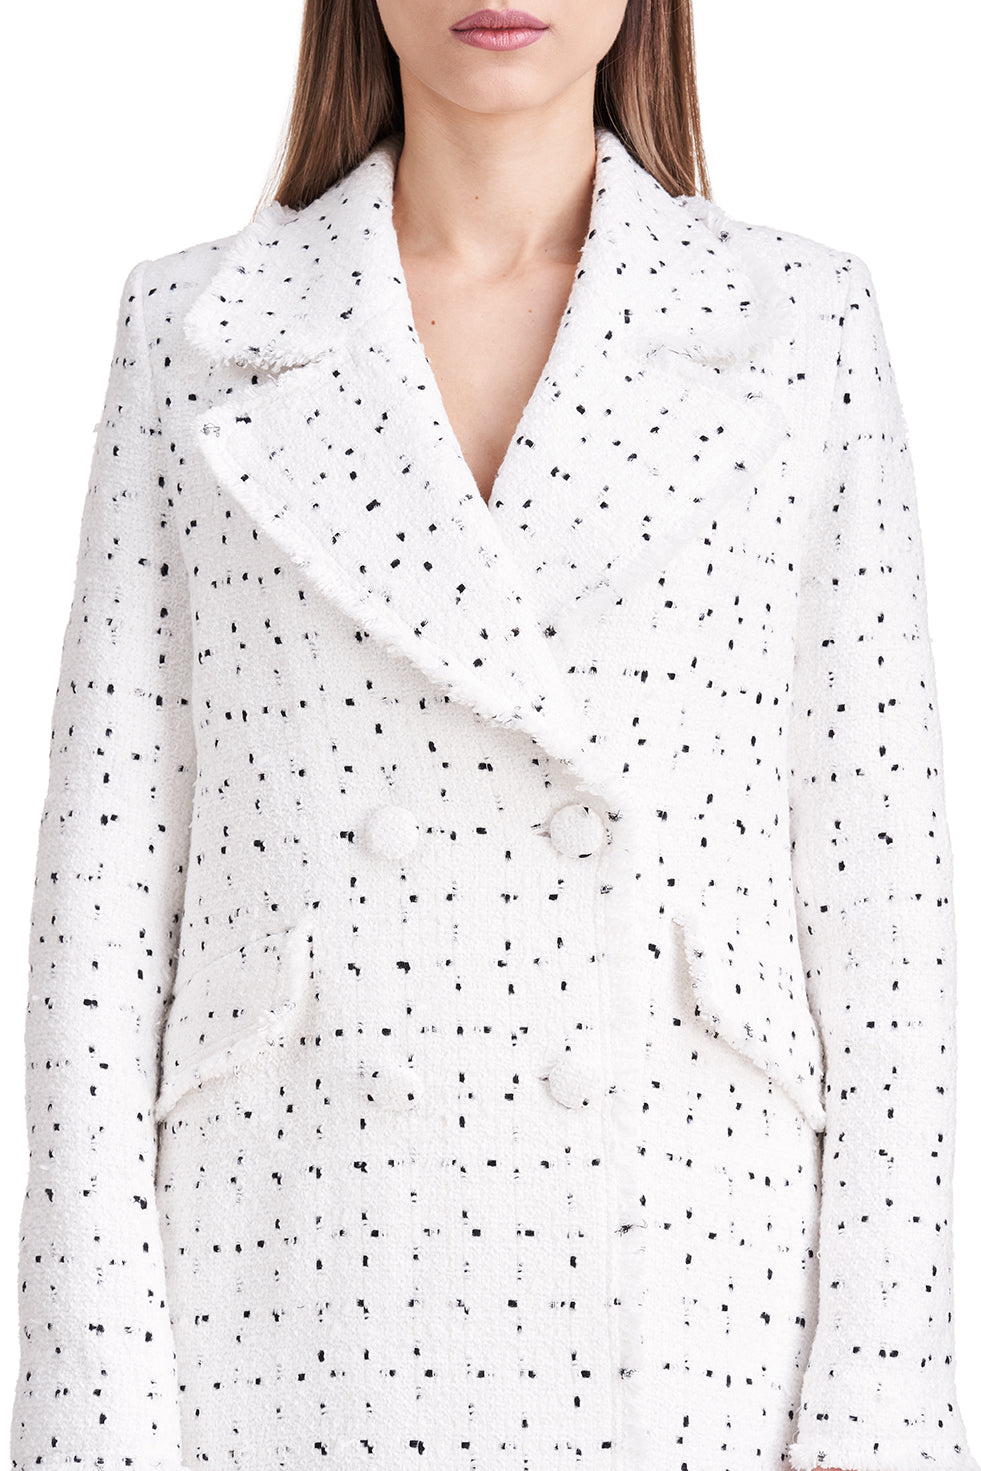 Eden White Lapel Coat